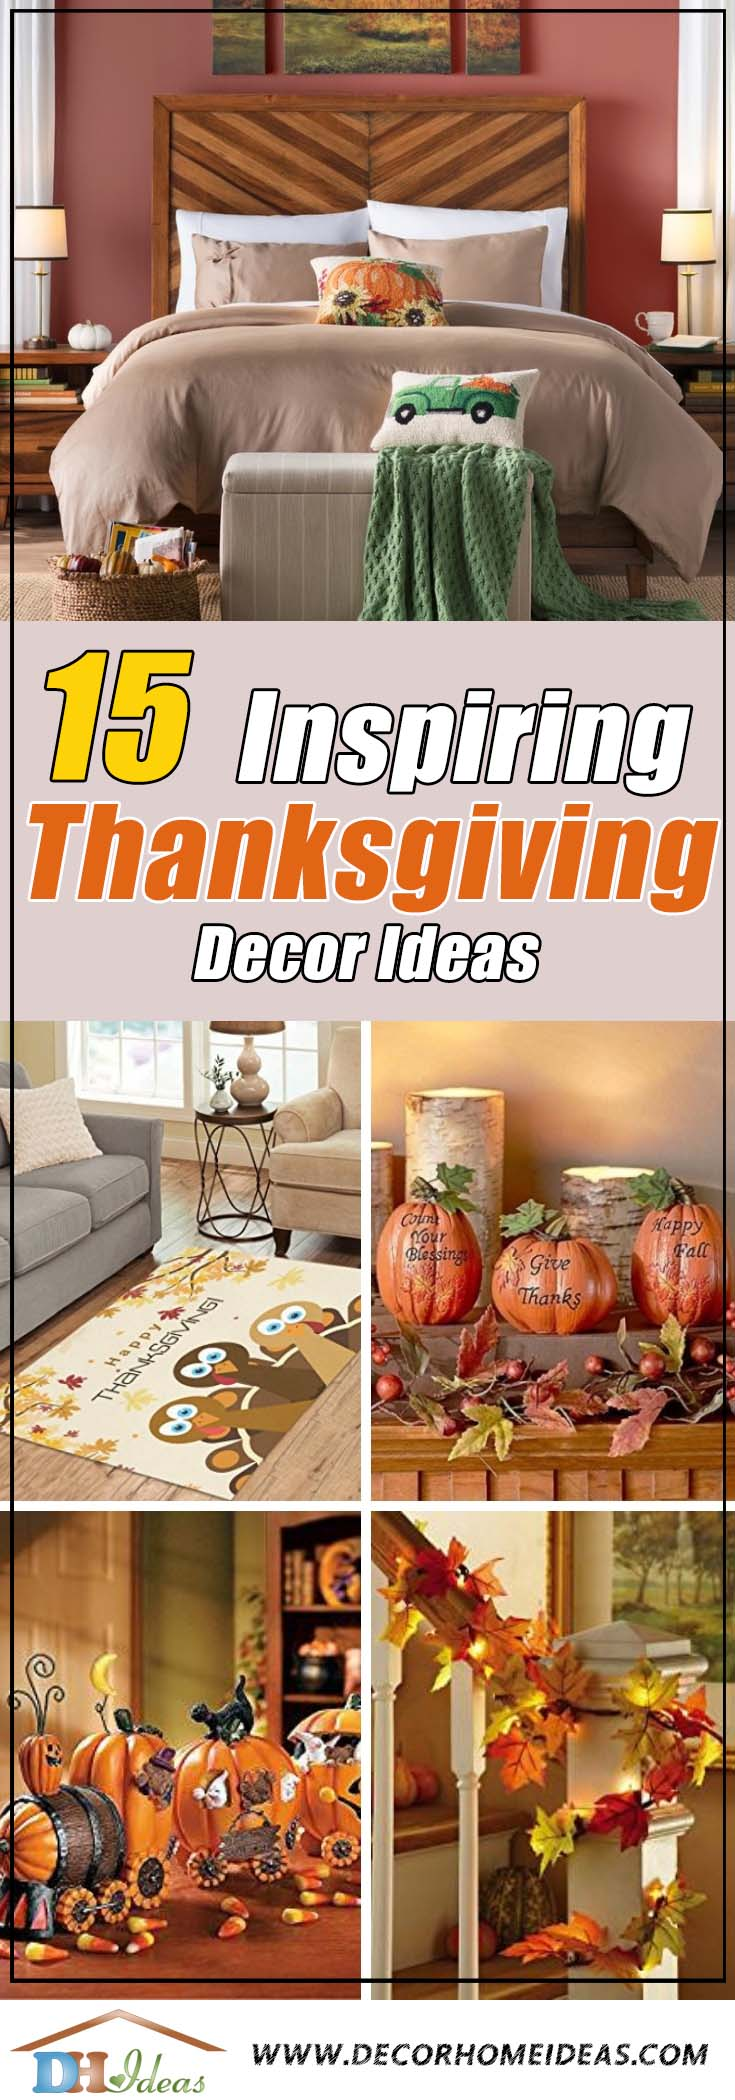 15 Inspiring Ideas For Thanksgiving Decor and Wonderful Dreams | Decoration tips and ideas on thanksgiving. #thanksgiving #decor #pumpkin #fall #inspiration #decoration #decorhomeideas